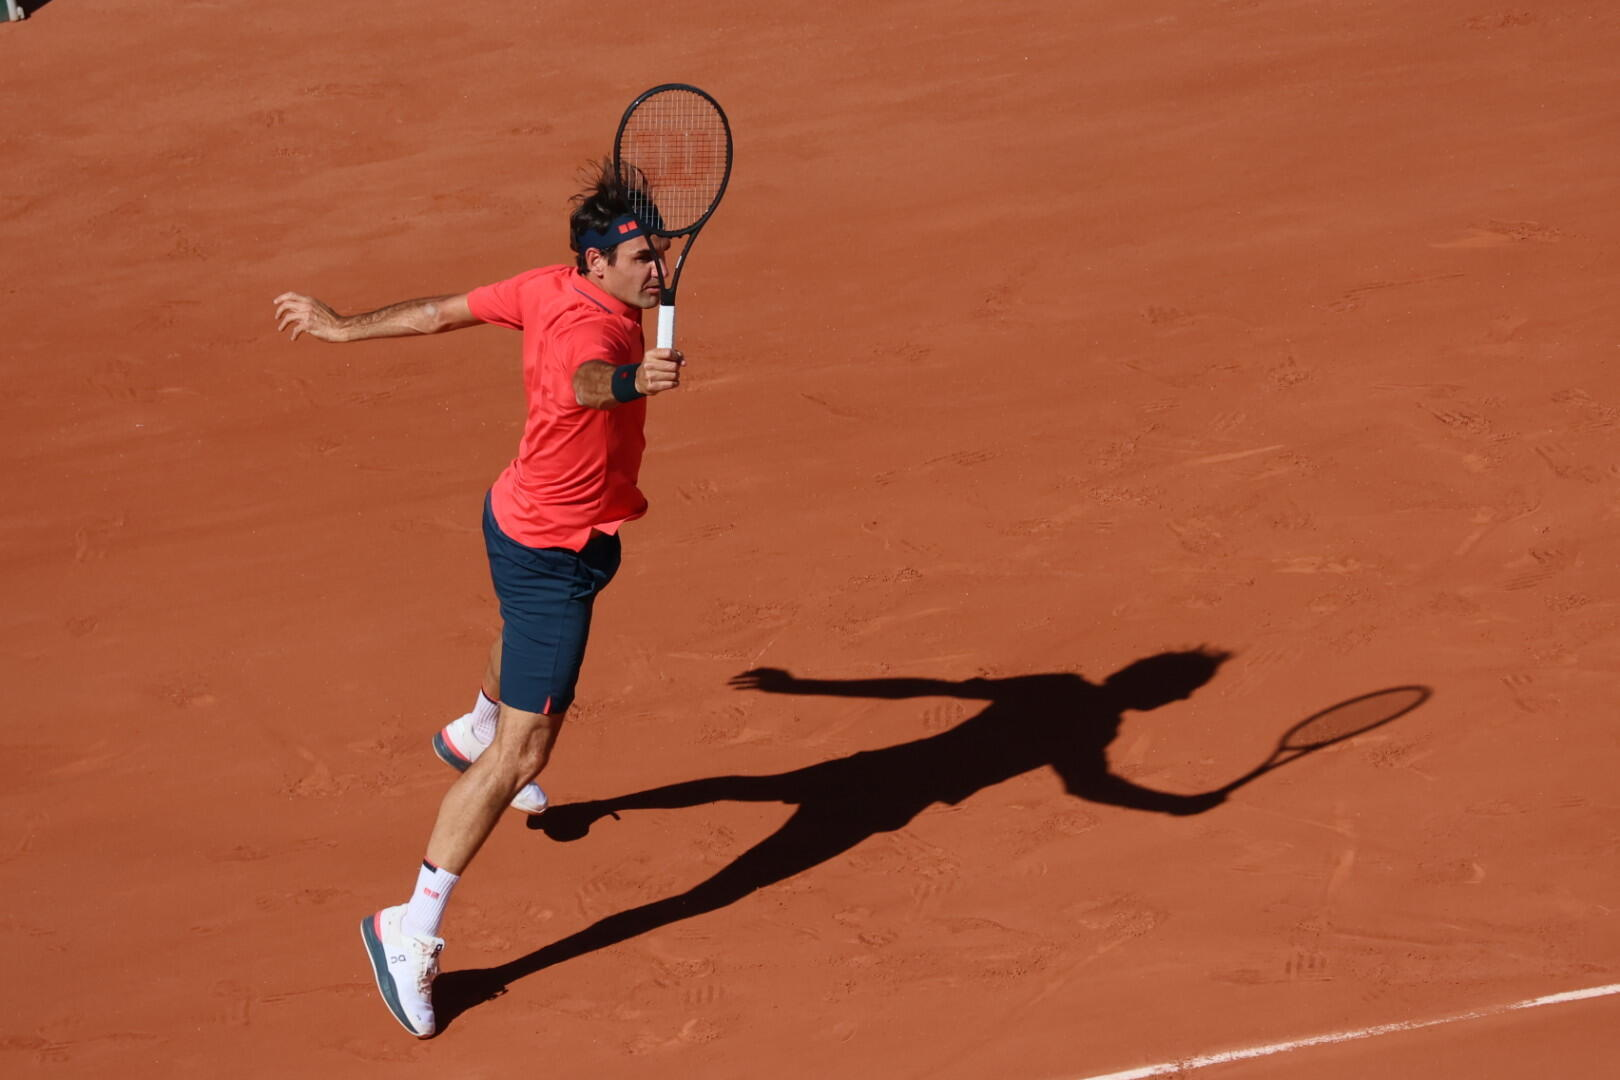 Former champion Roger Federer moved into the second round after a straight sets win over Denis Istomin.